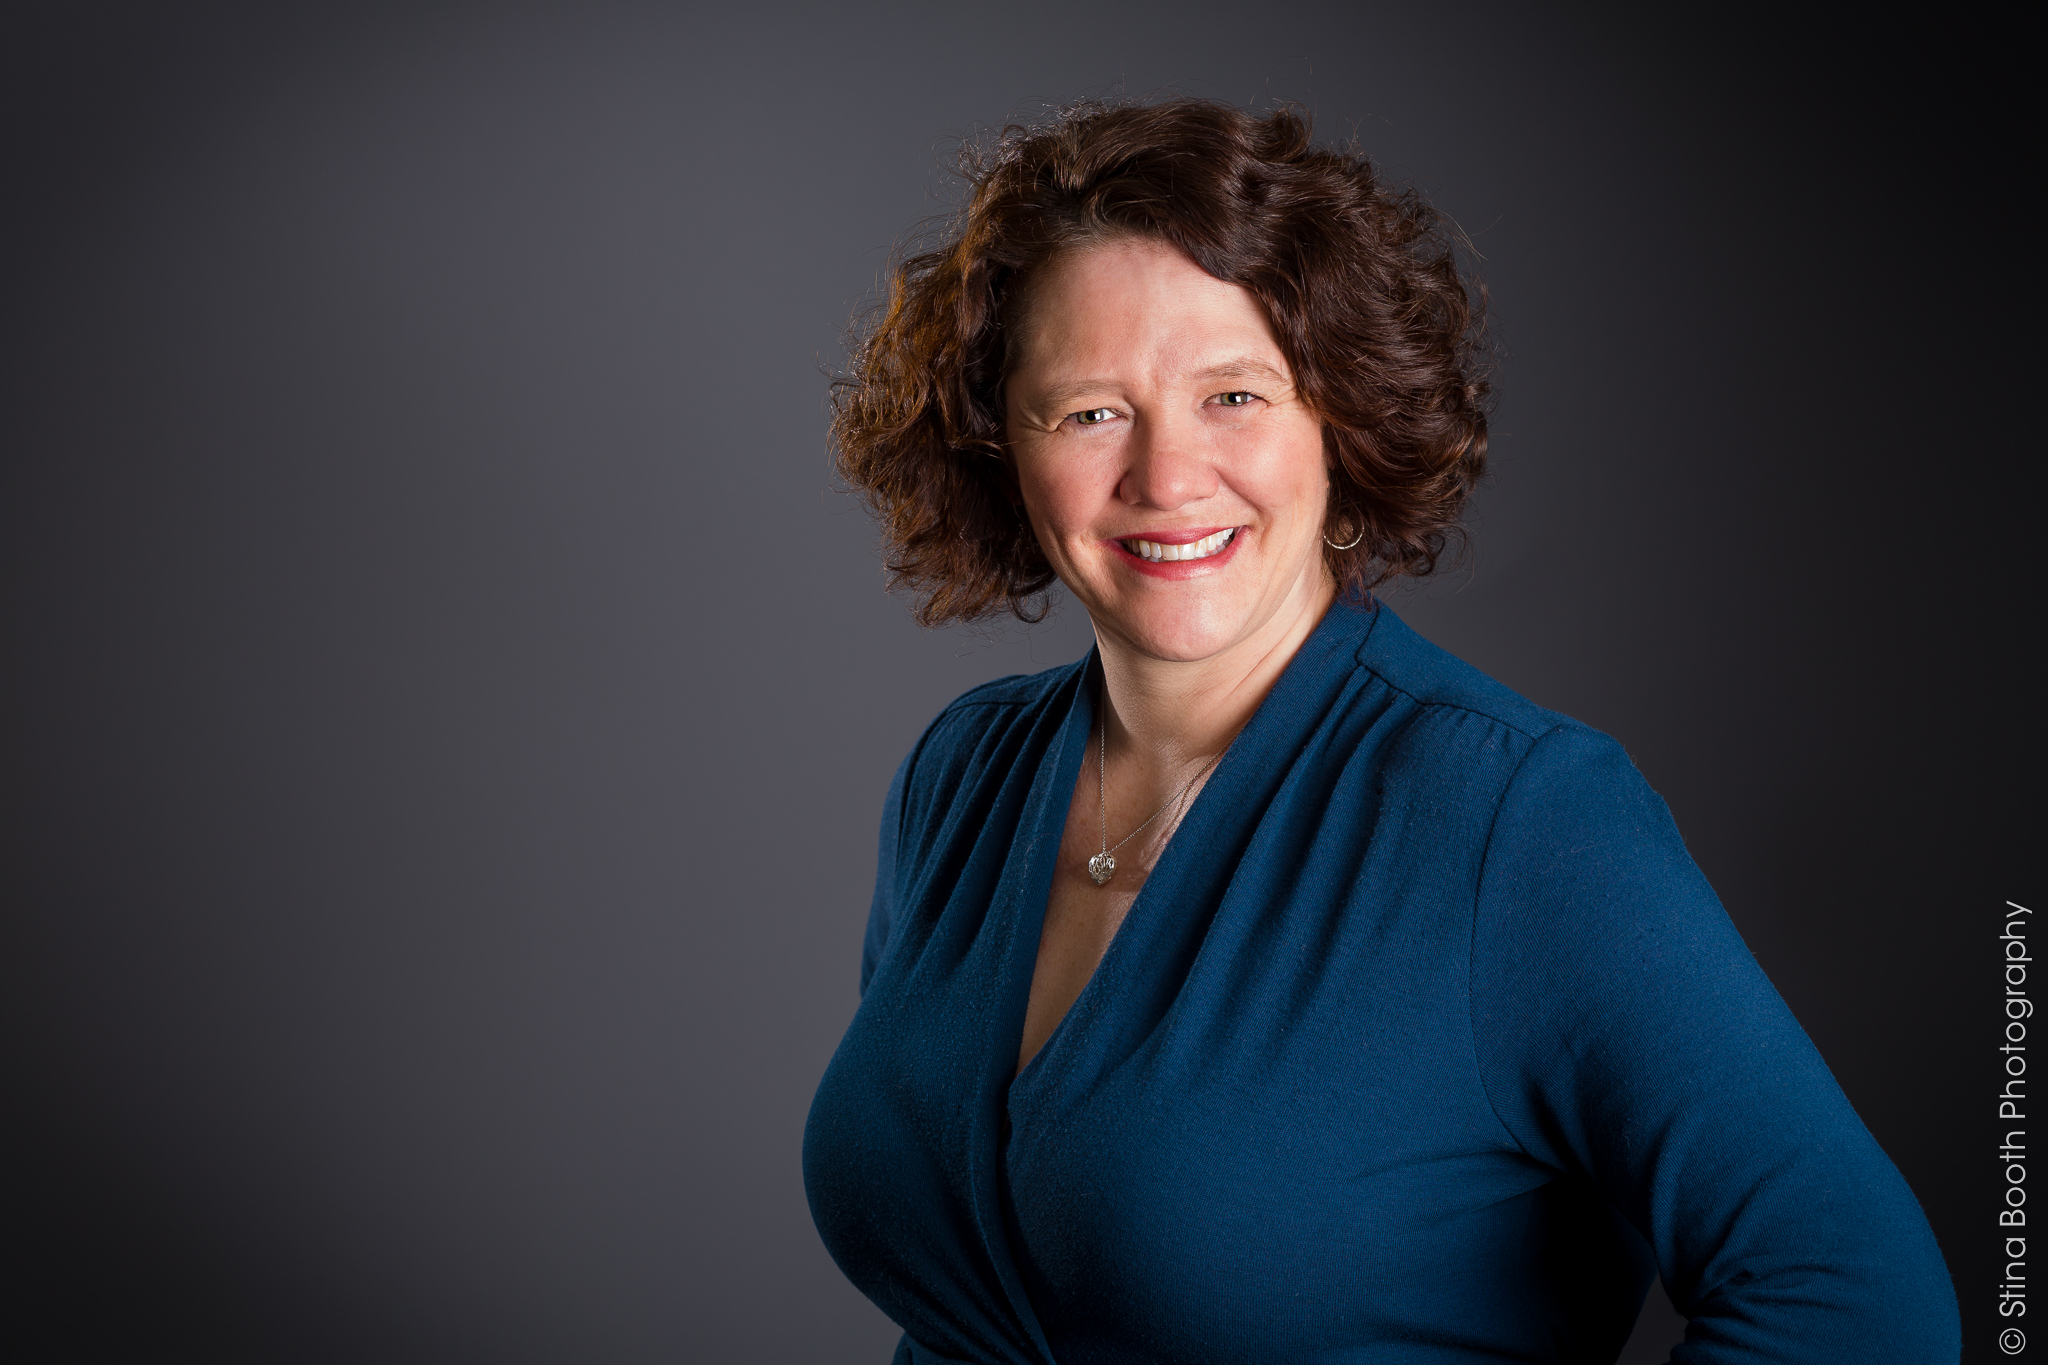 Professional headshot of Denise Smith by Vermont commercial photographer Stina Booth